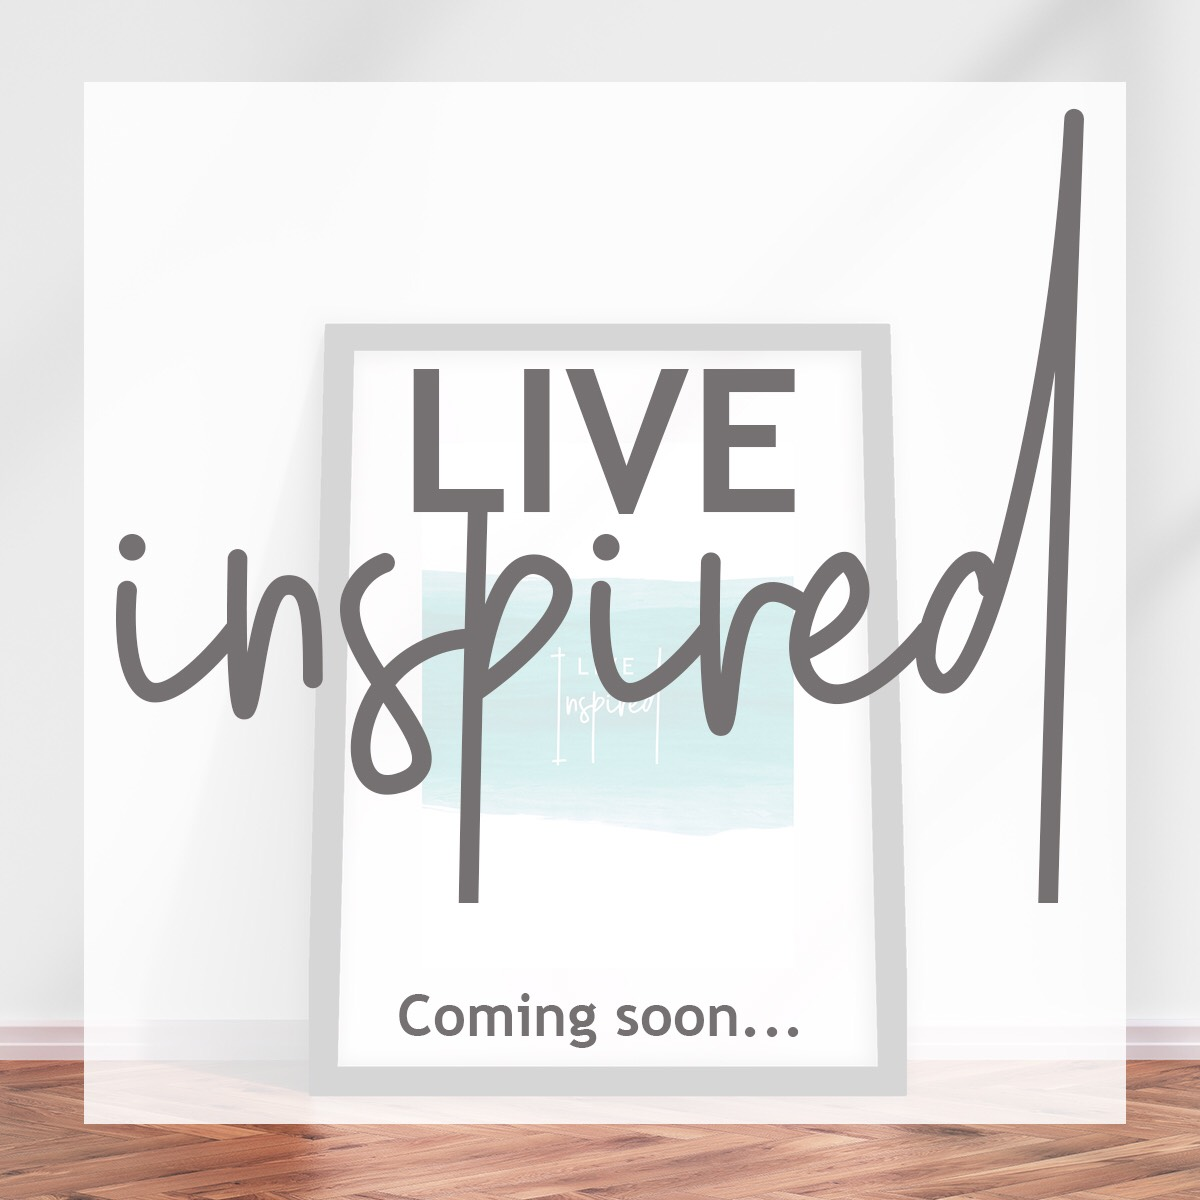 Live Inspired ... coming soon